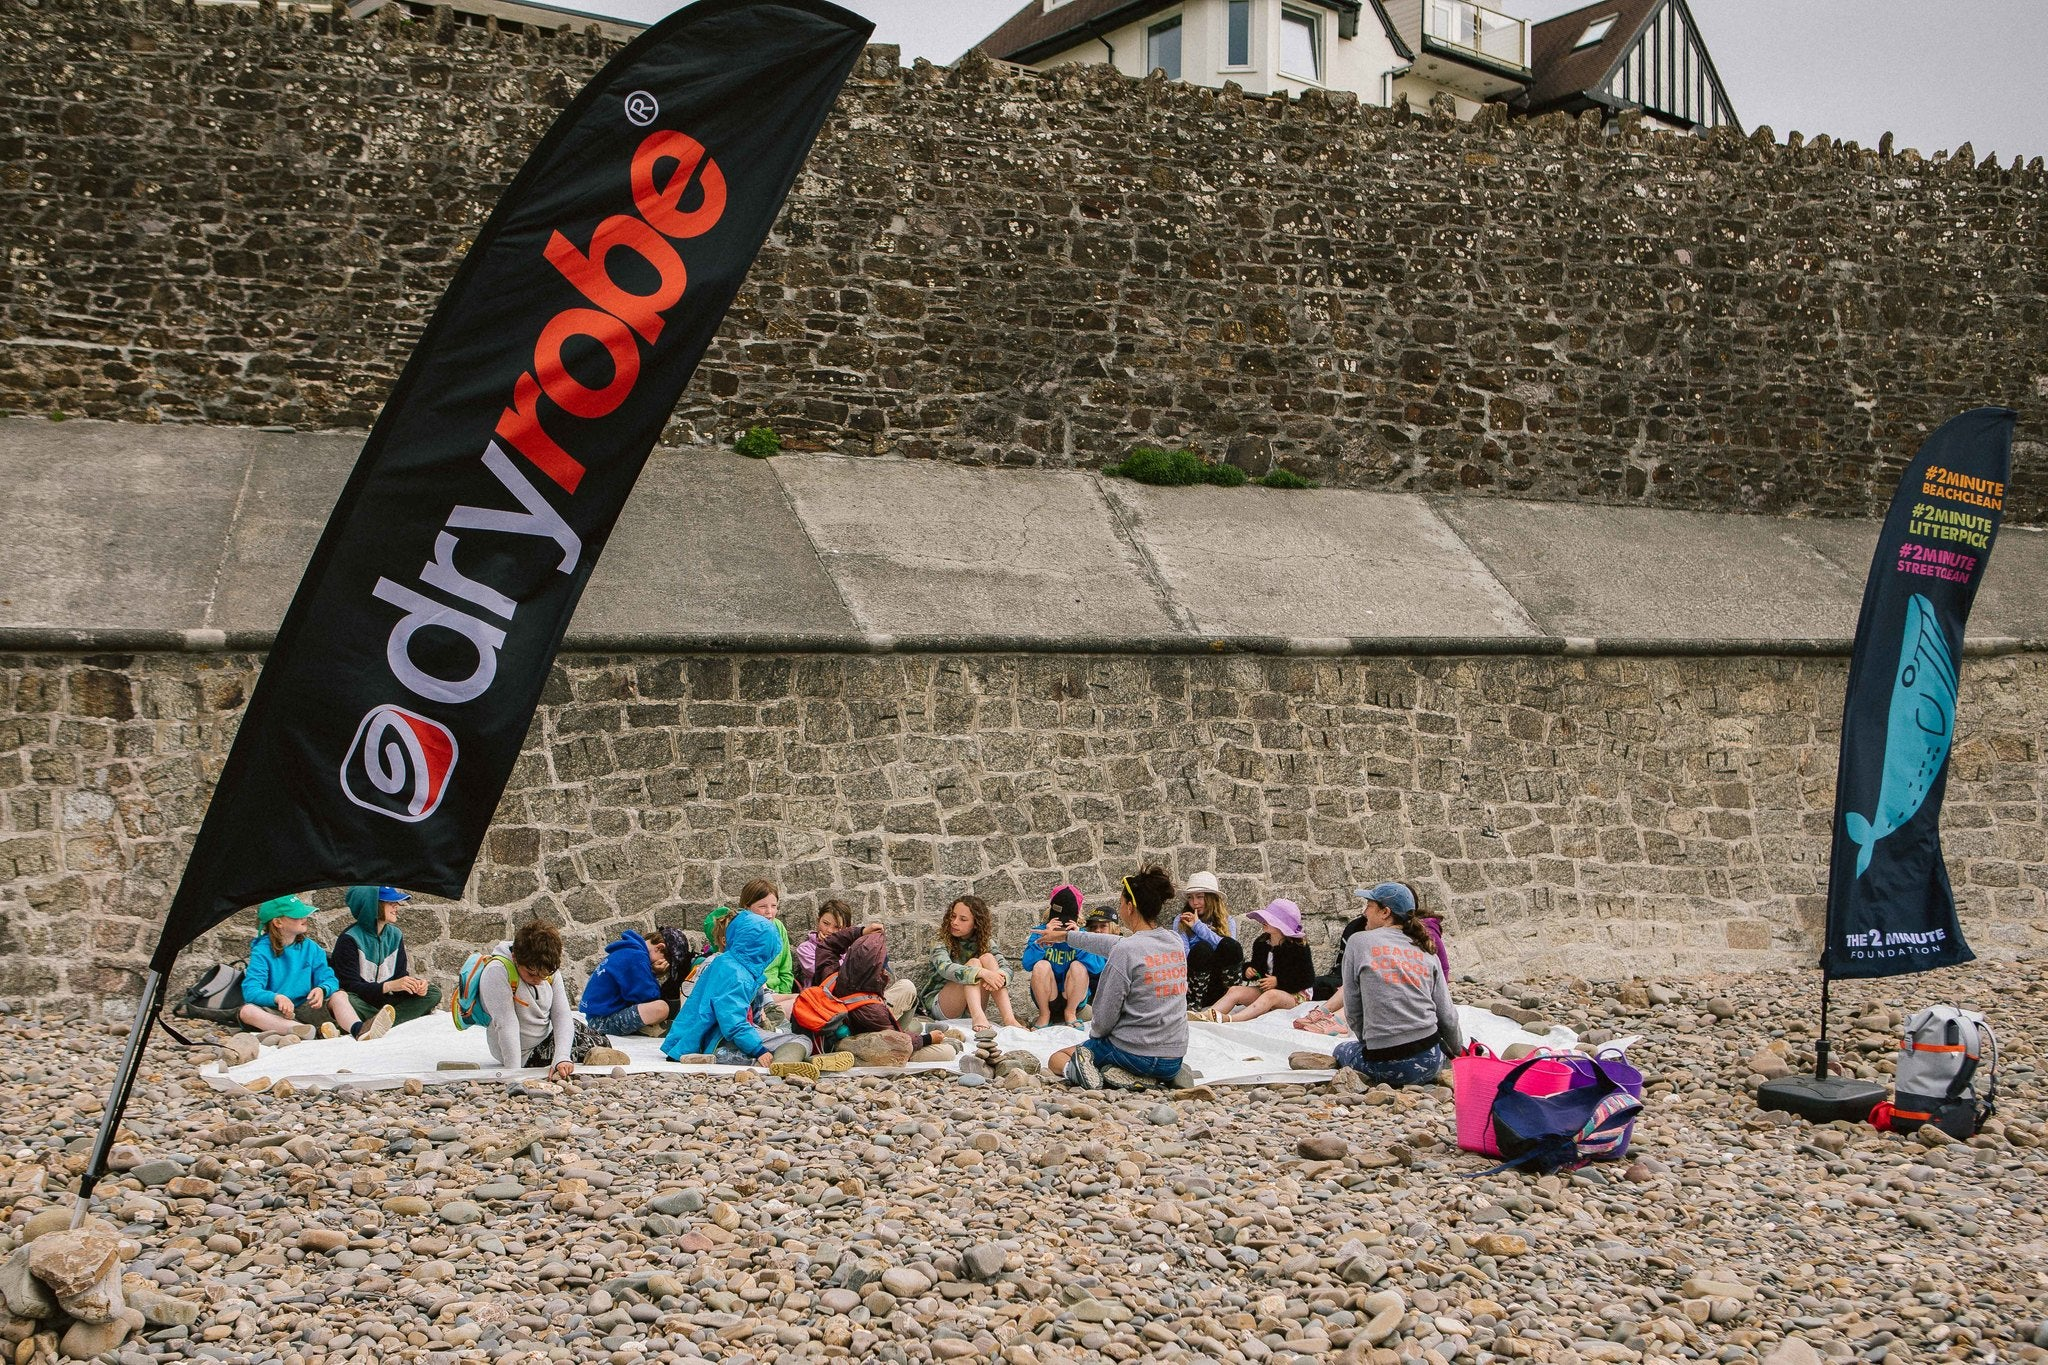 The 2 minute Beach School, supported by dryrobe®